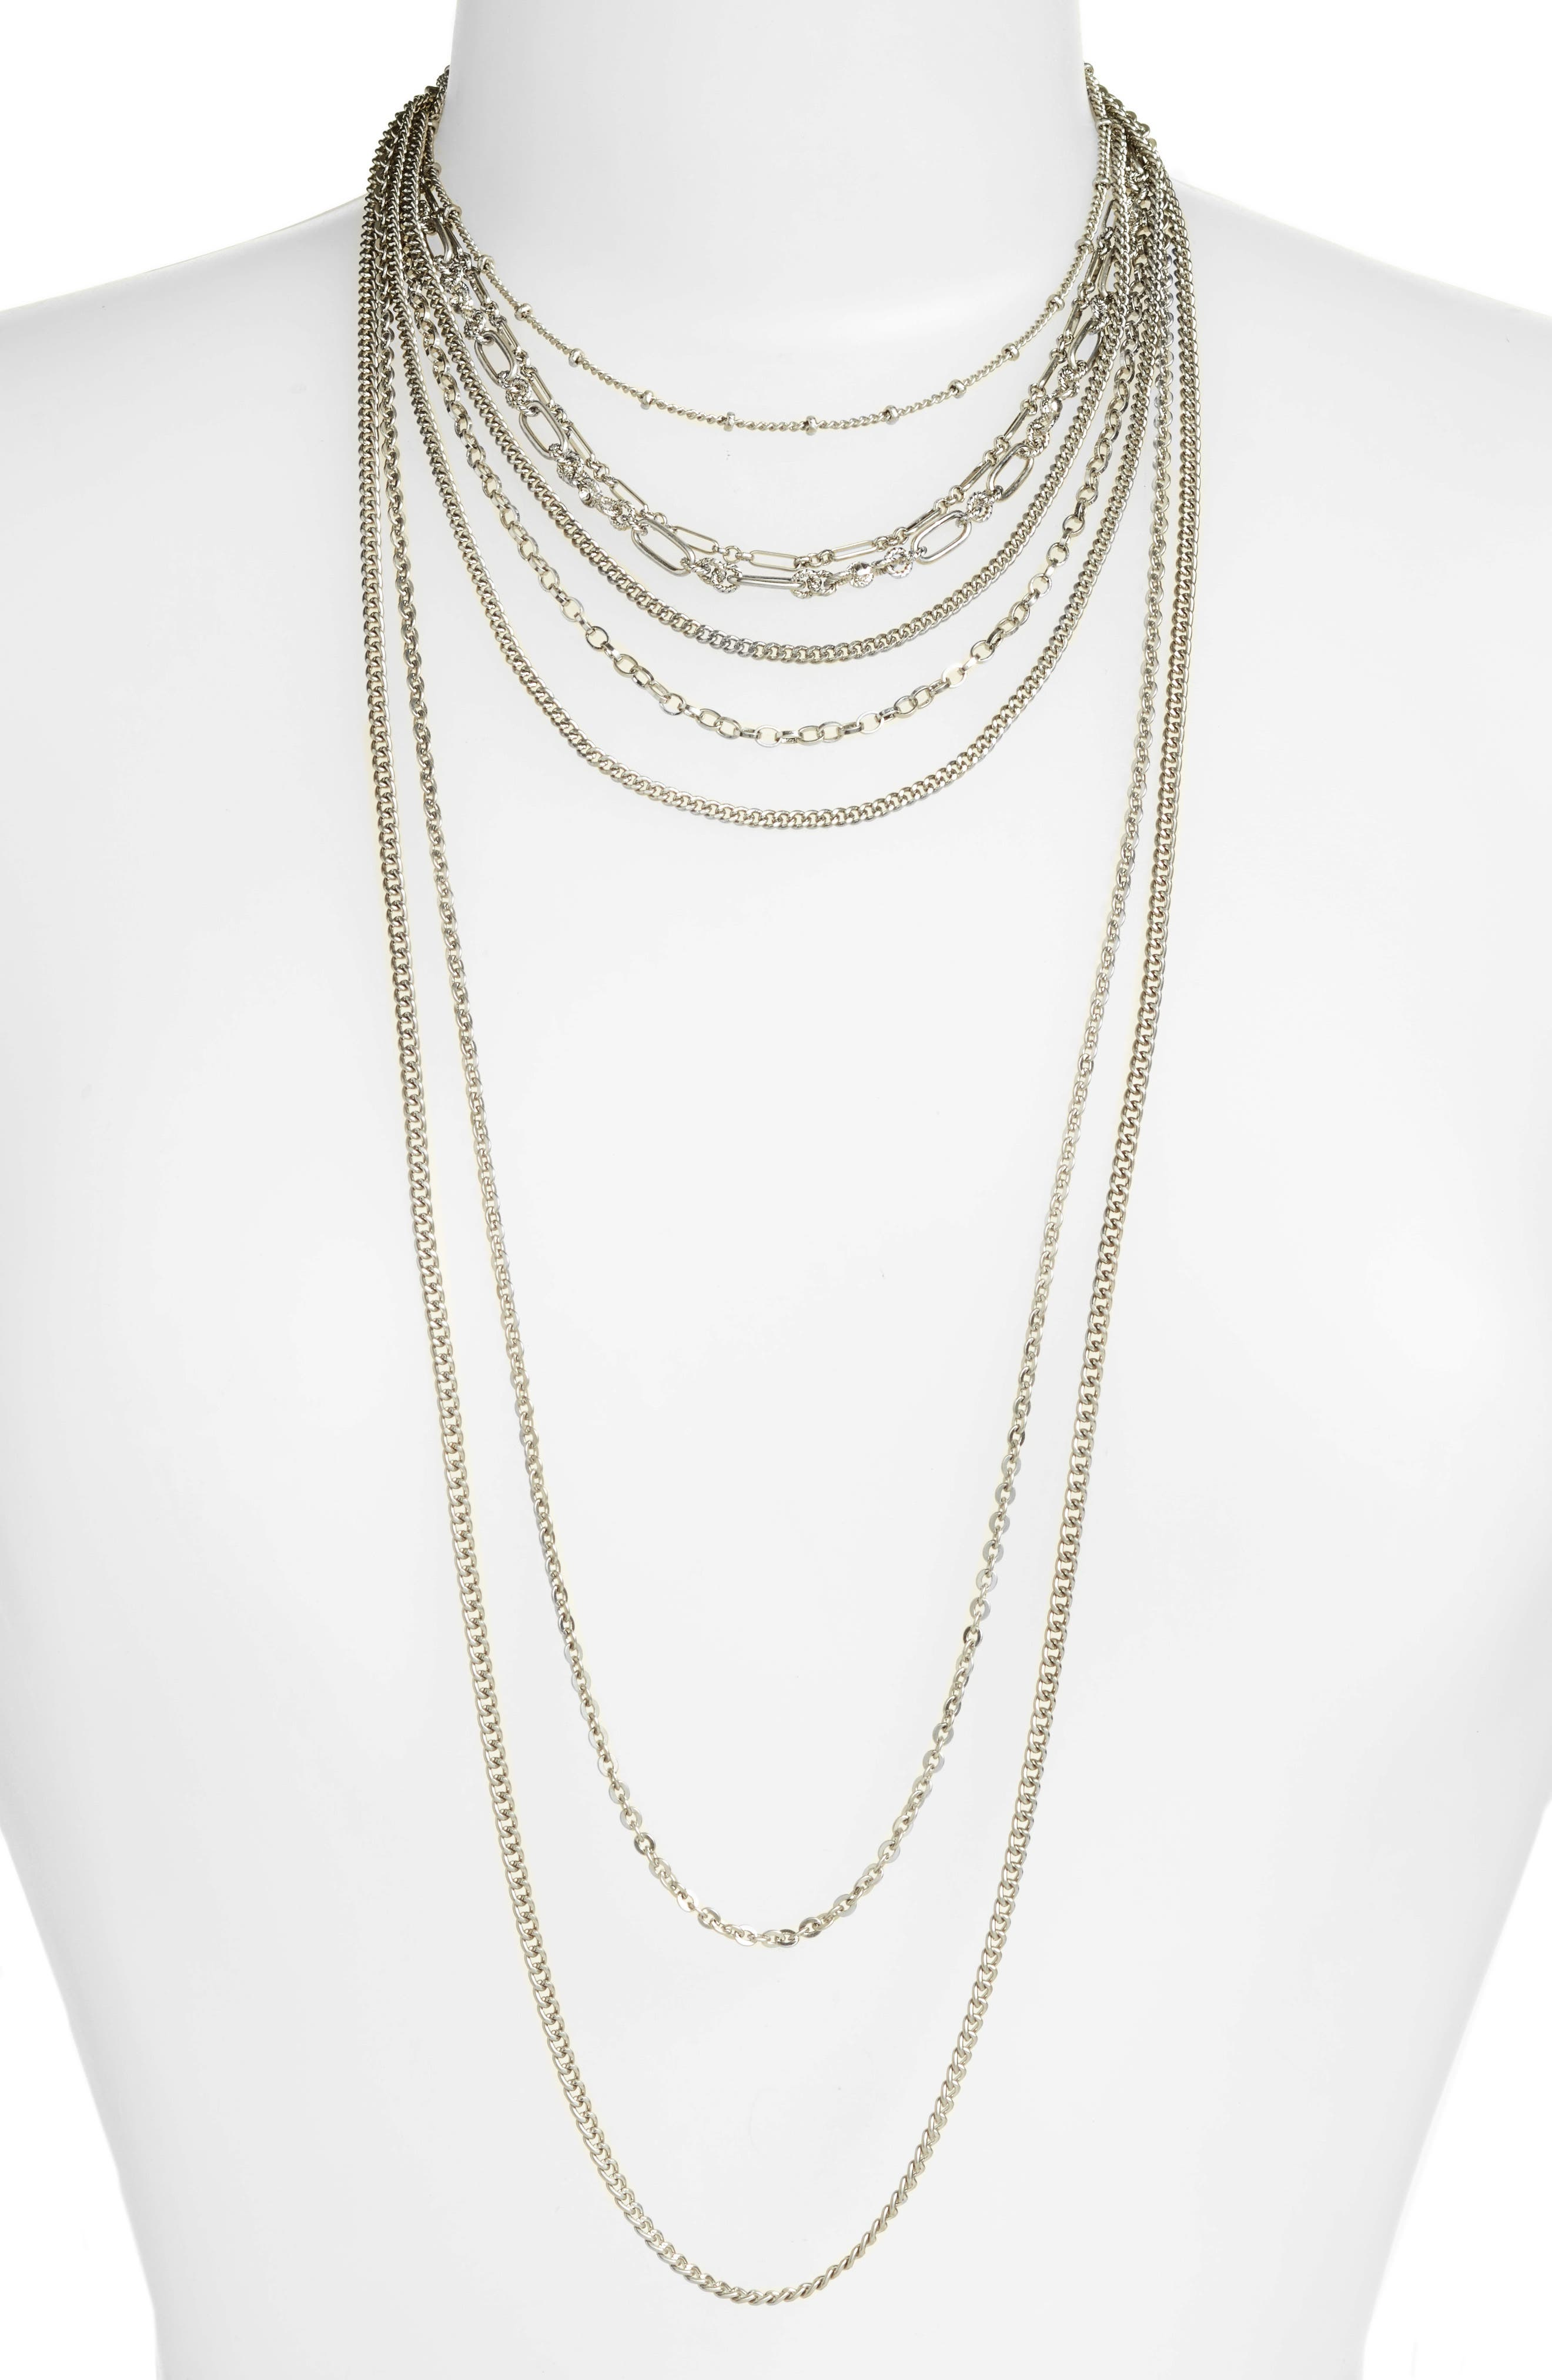 Multistrand Textured Chain Necklace,                         Main,                         color, 040